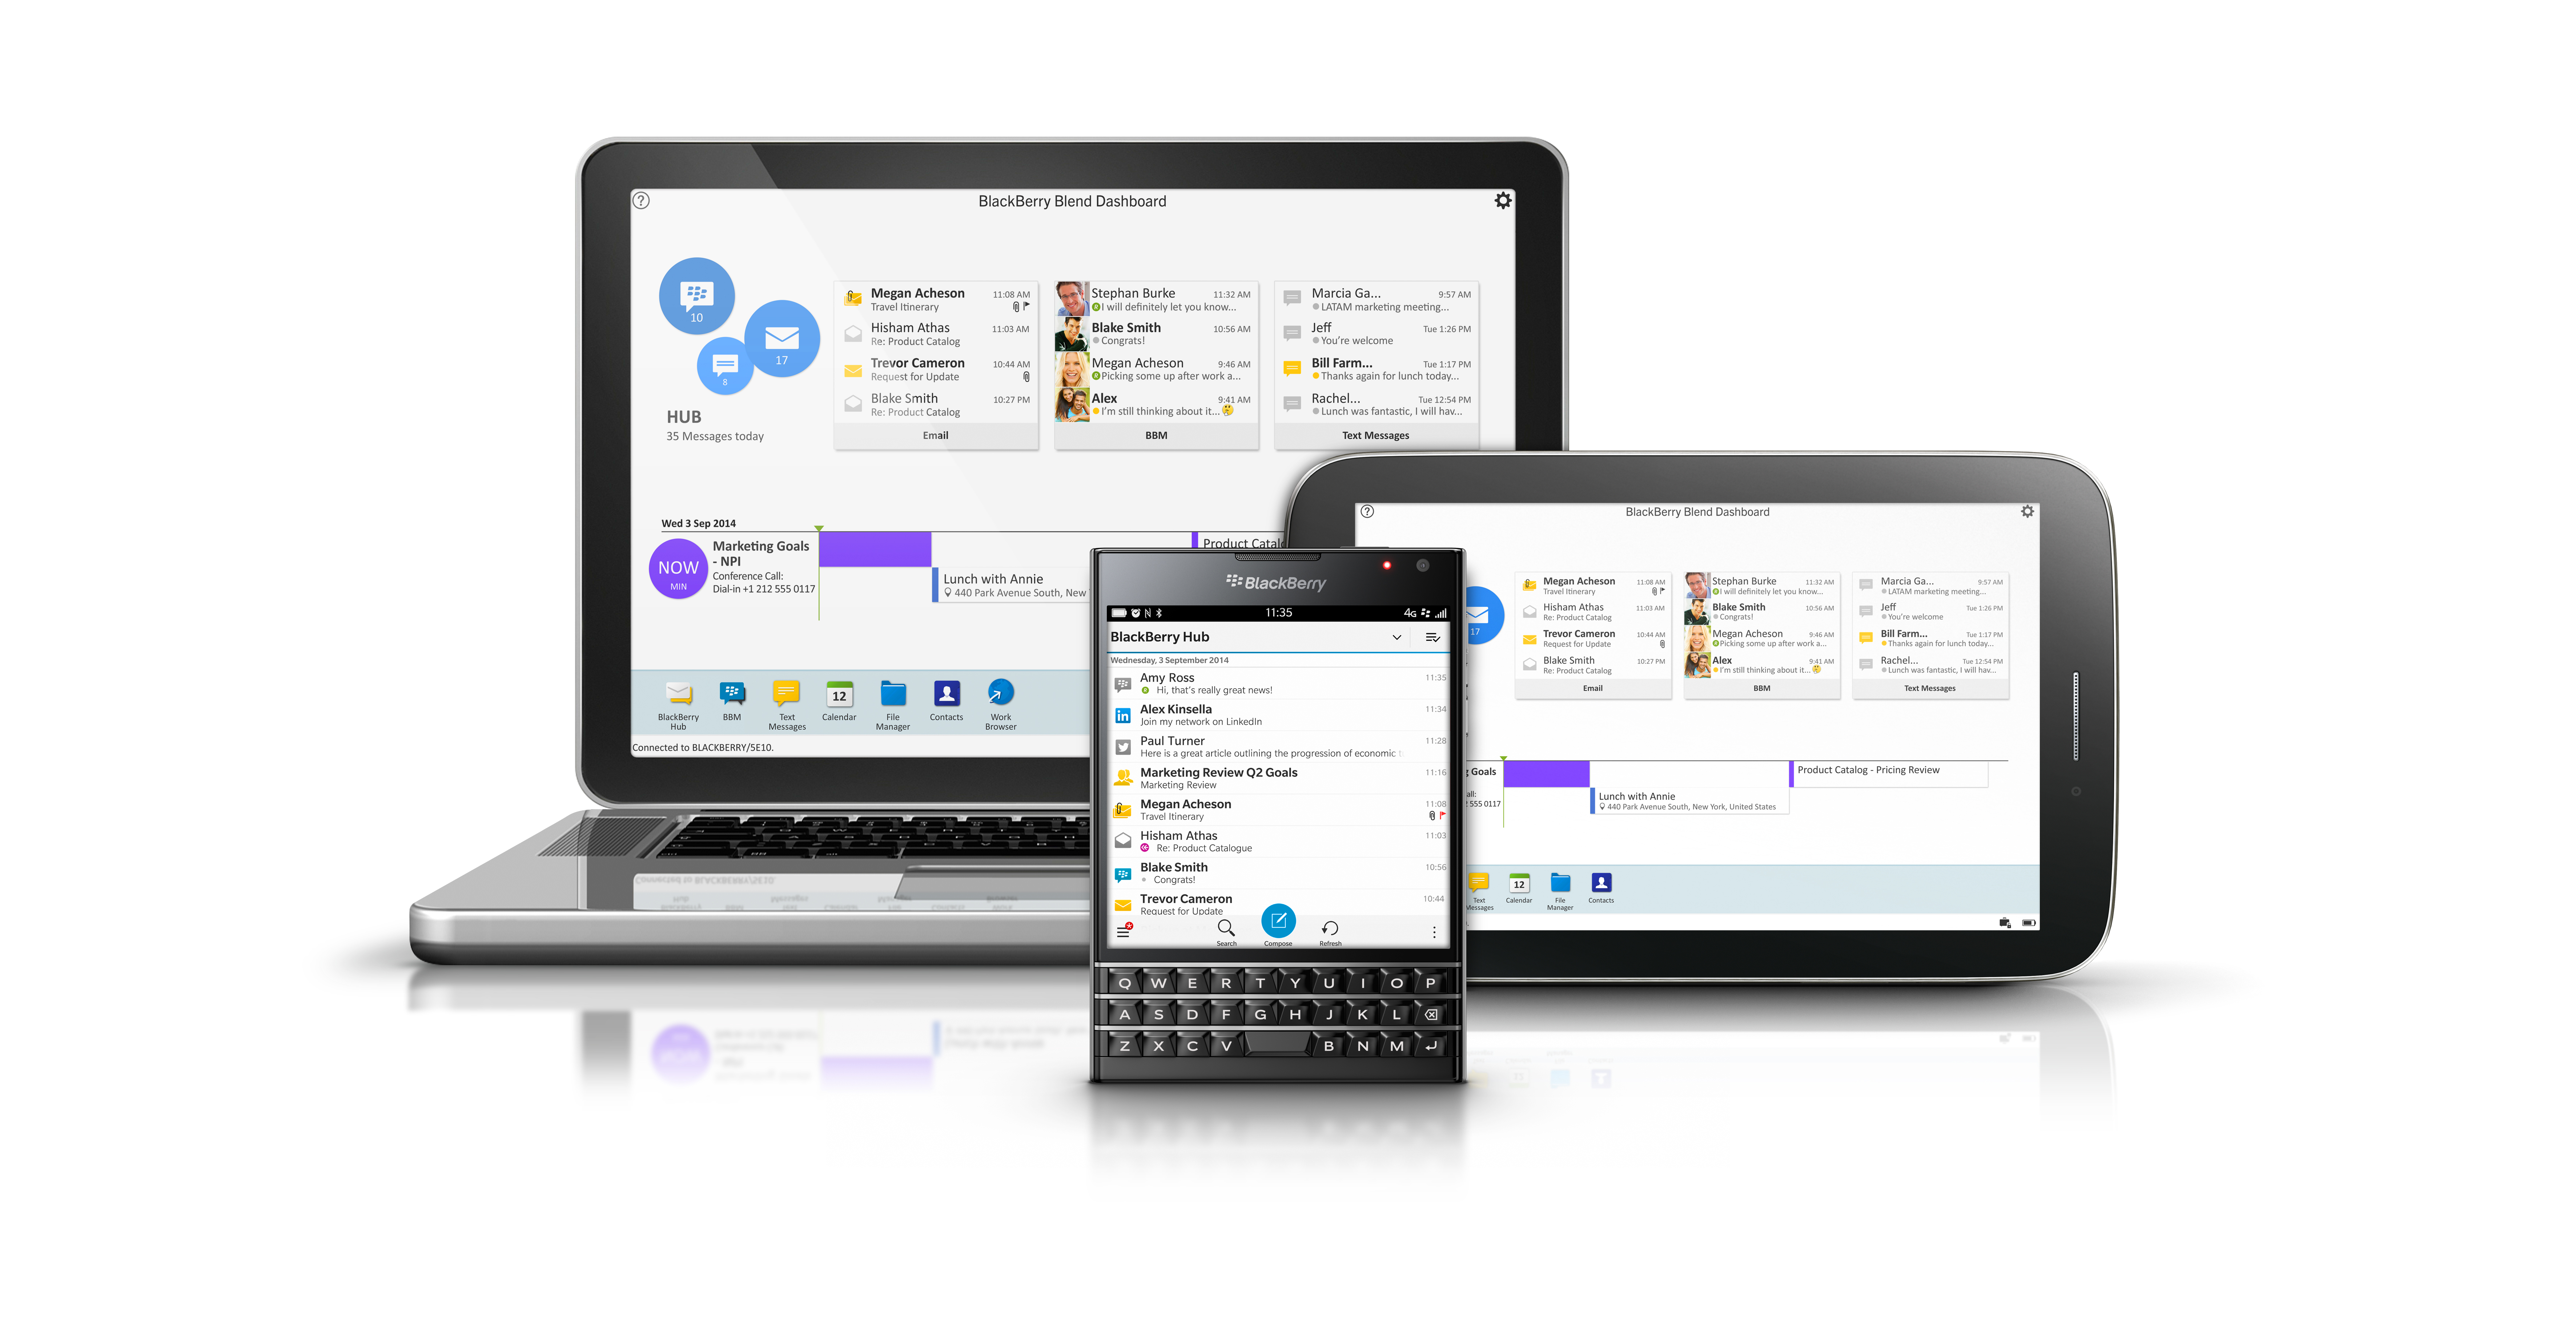 BlackBerry 10.3.1 update brings Blend, Assistant and